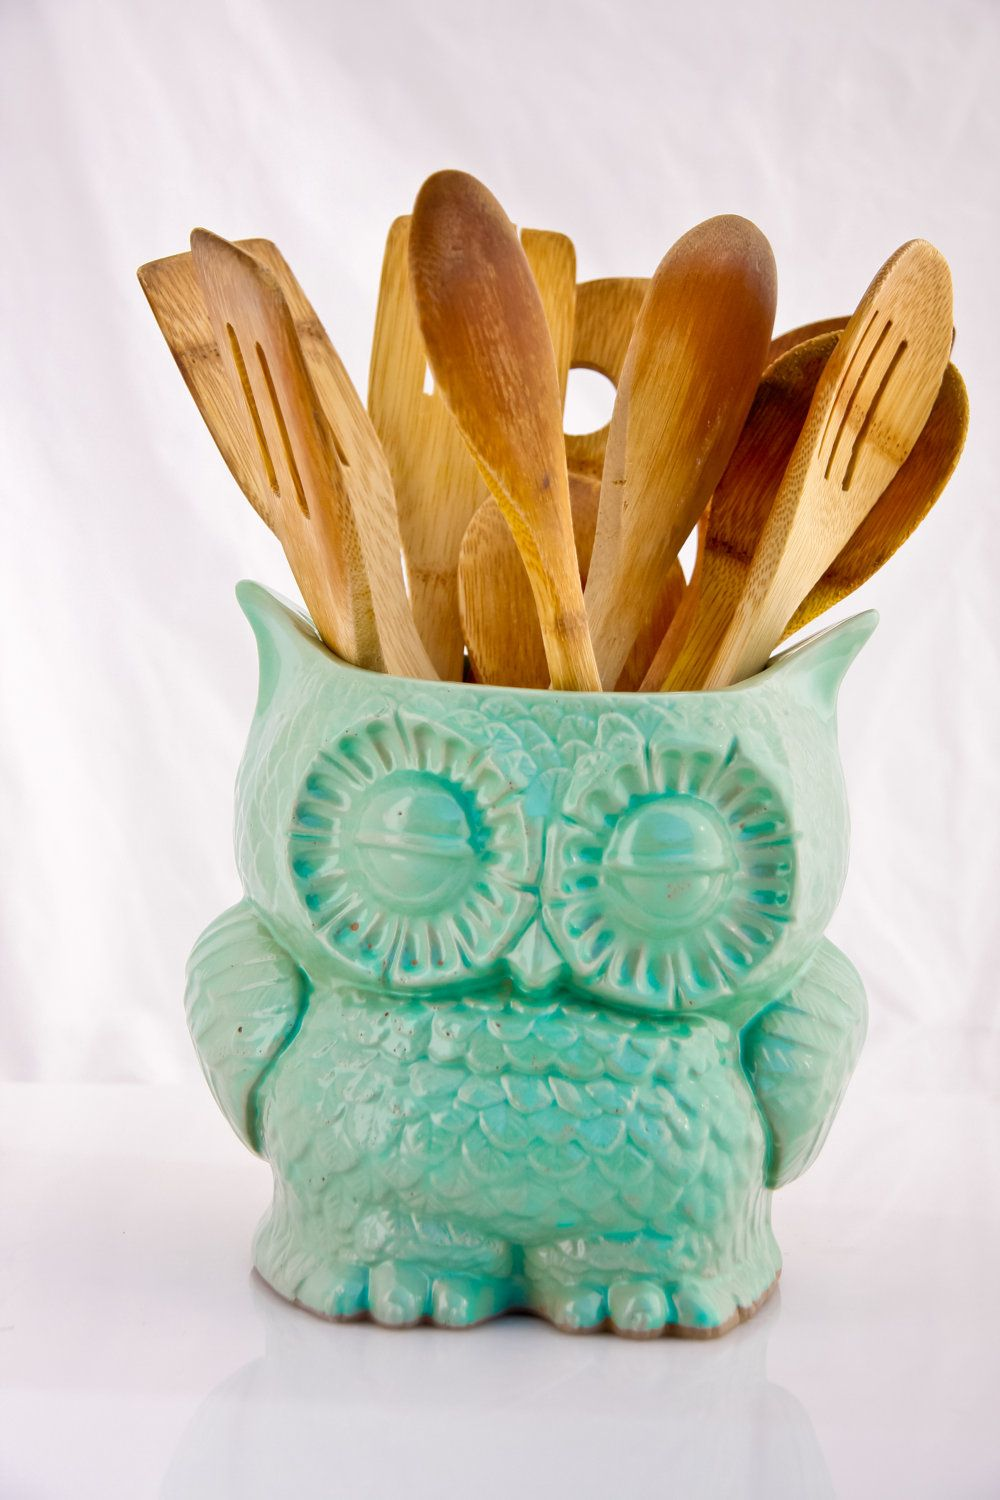 Ceramic Owl Planter In MINT Large Vintage Style Home Decor. Good For Kitchen  Utensils